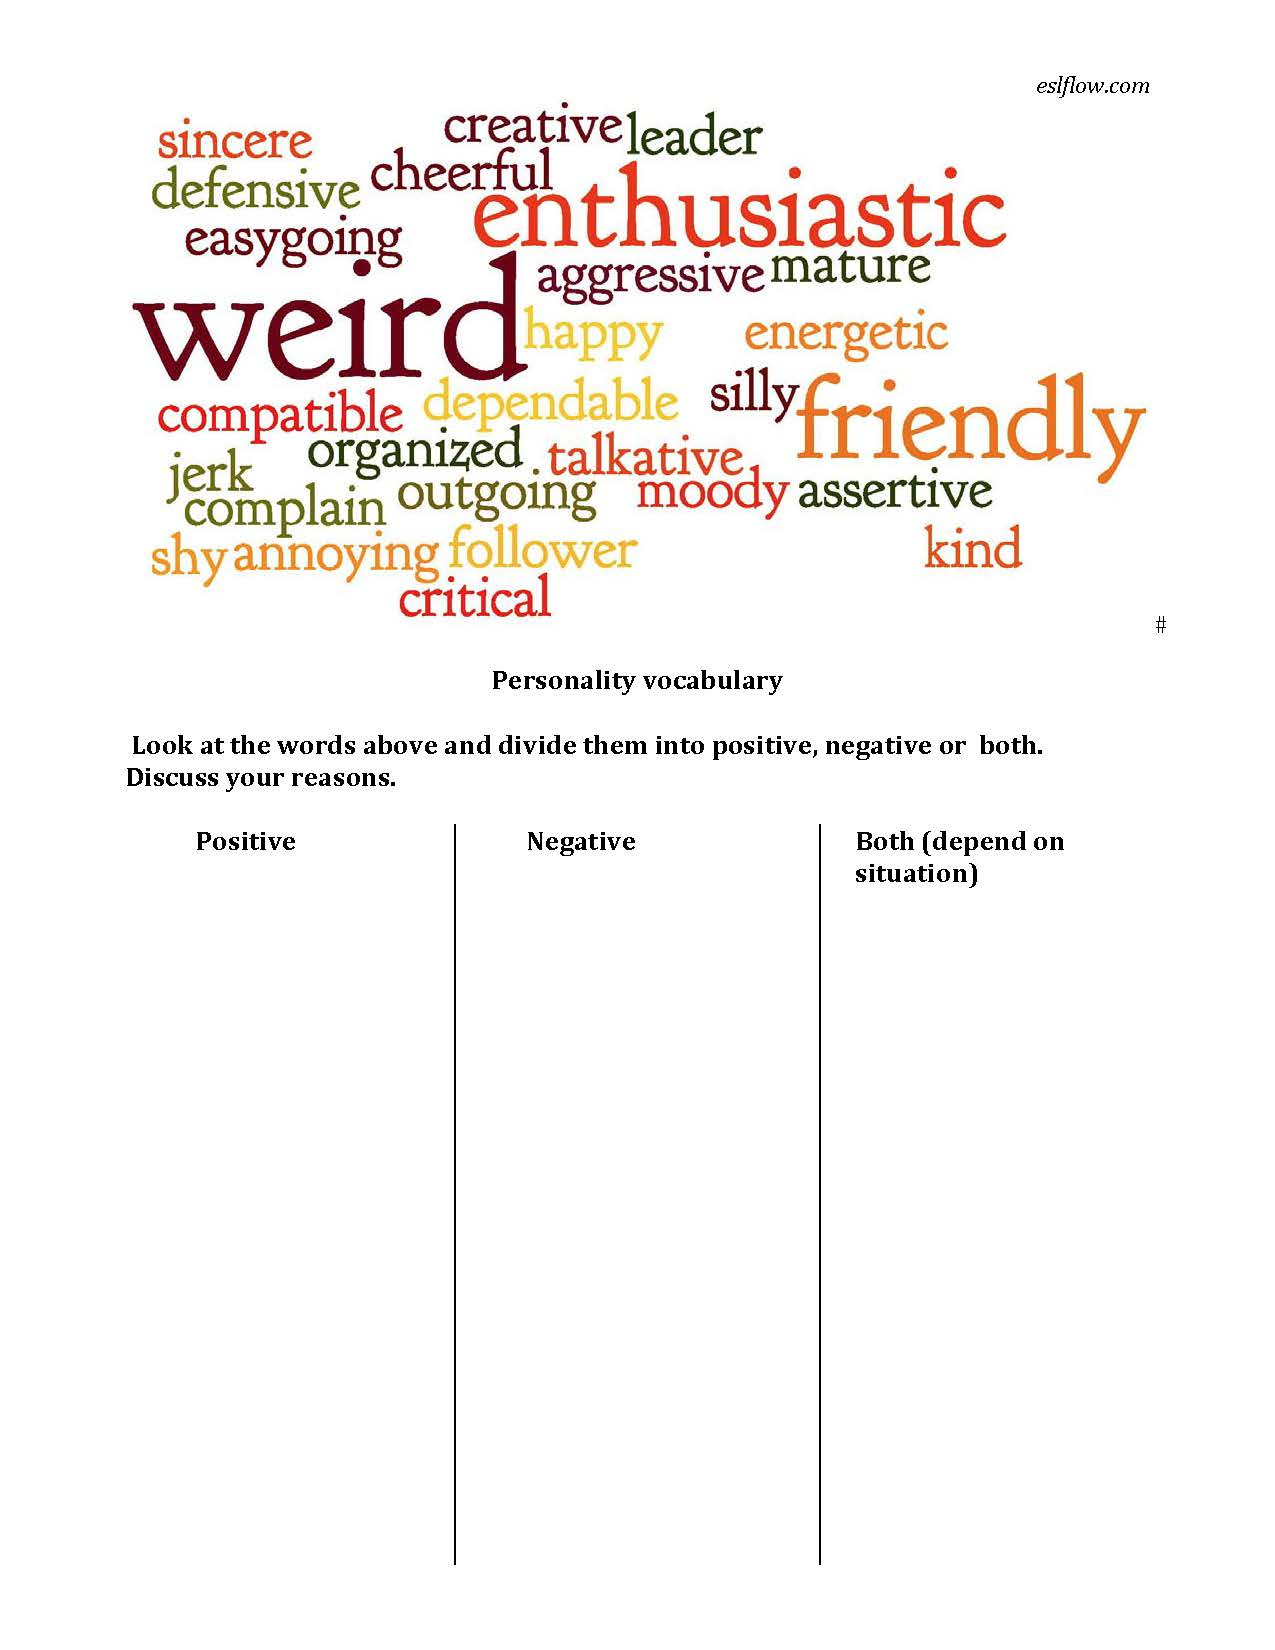 Personality Adjective Vocabulary Worksheet For English Language